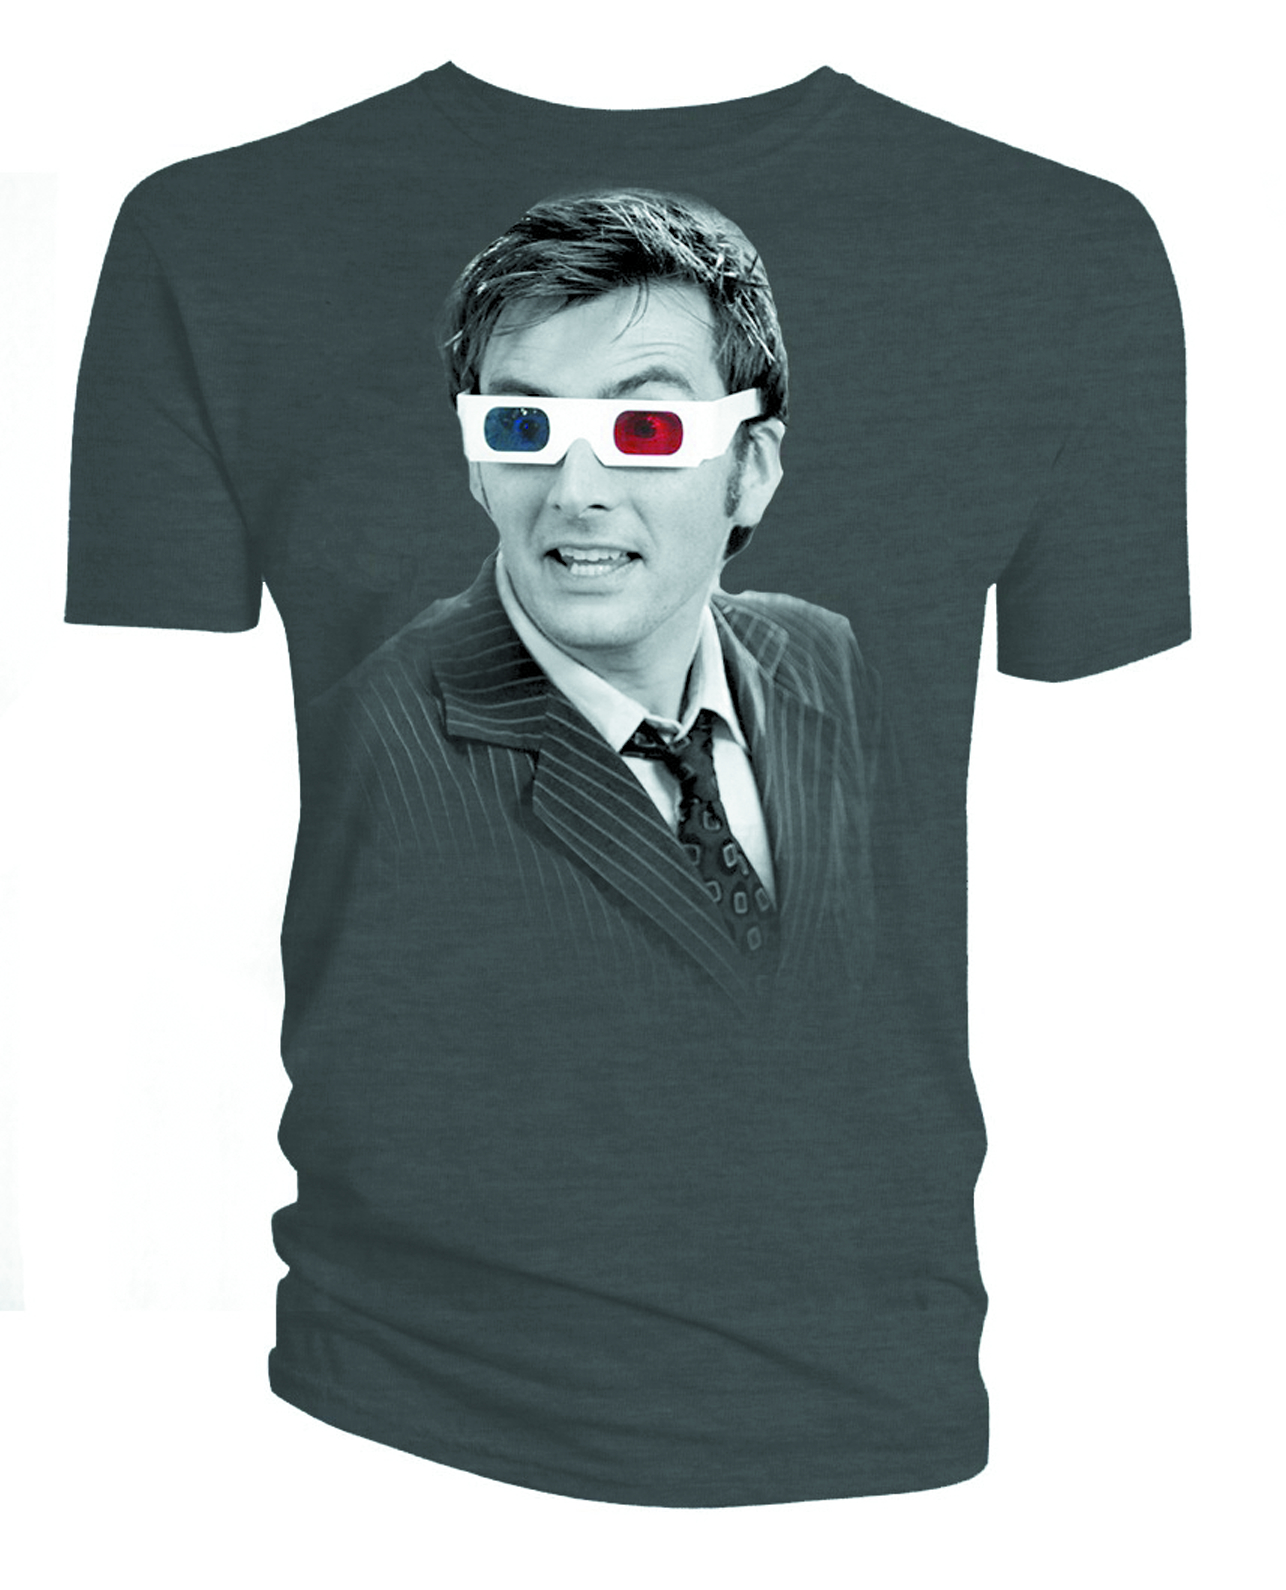 DW TENTH DOCTOR 3D GLASSES PX CHARCOAL T/S MED